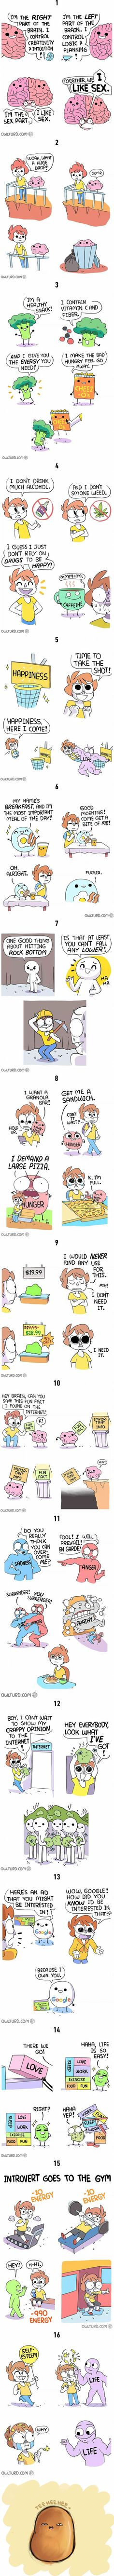 Brilliant Owlturd comic strips they are just a little too relatable